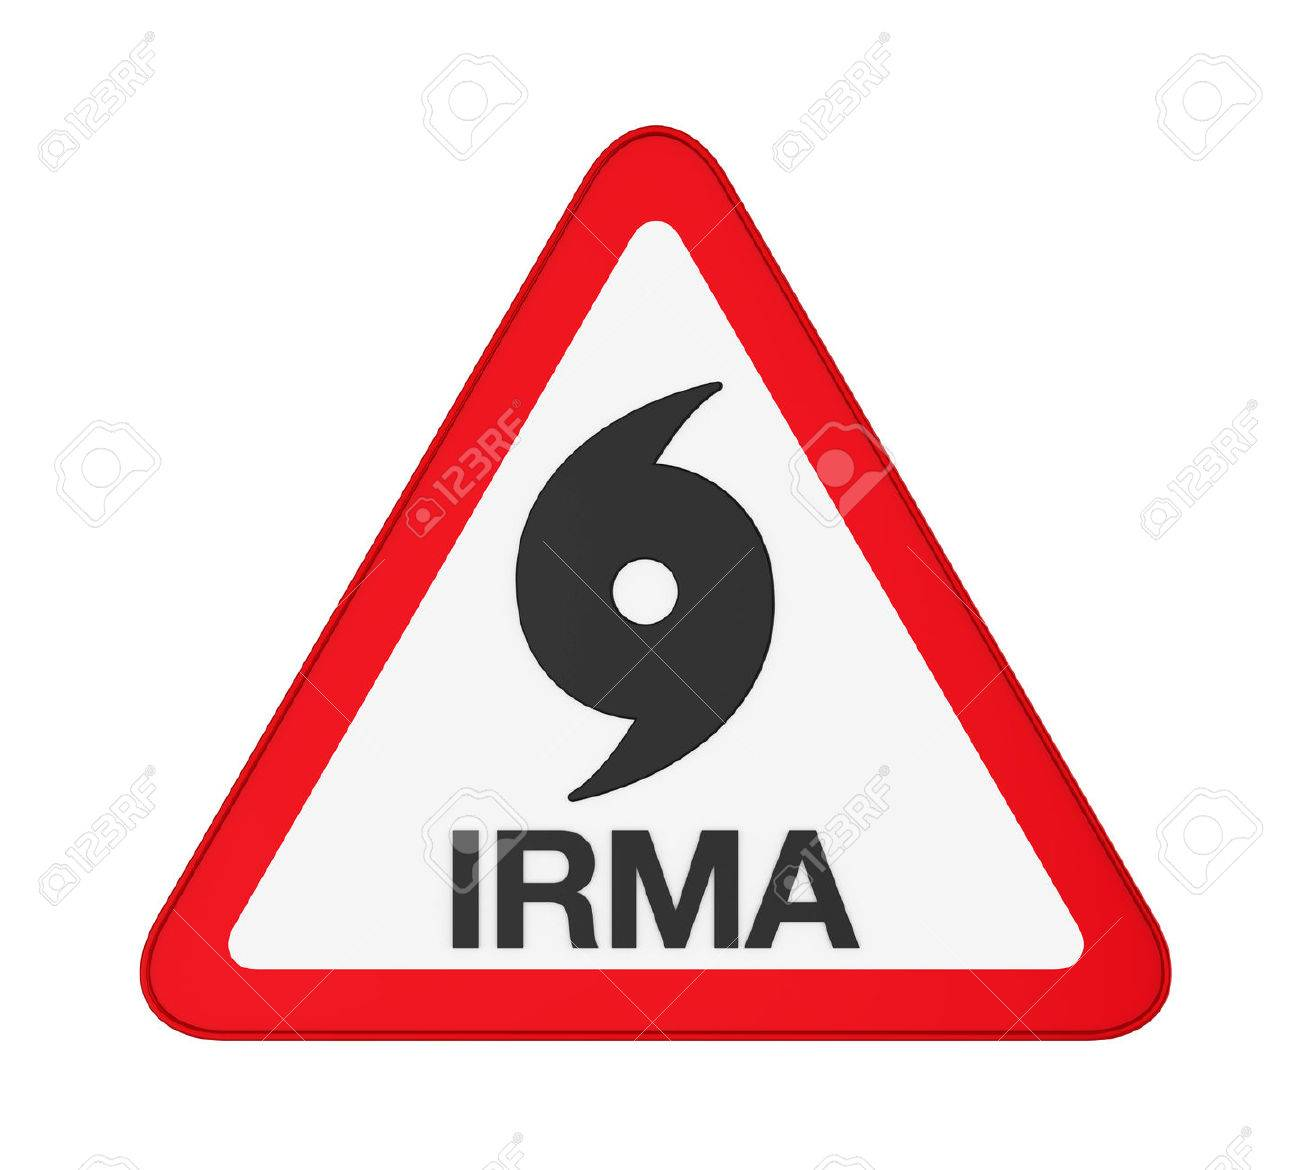 Hurricane Irma Warning Sign Isolated Stock Photo Picture And